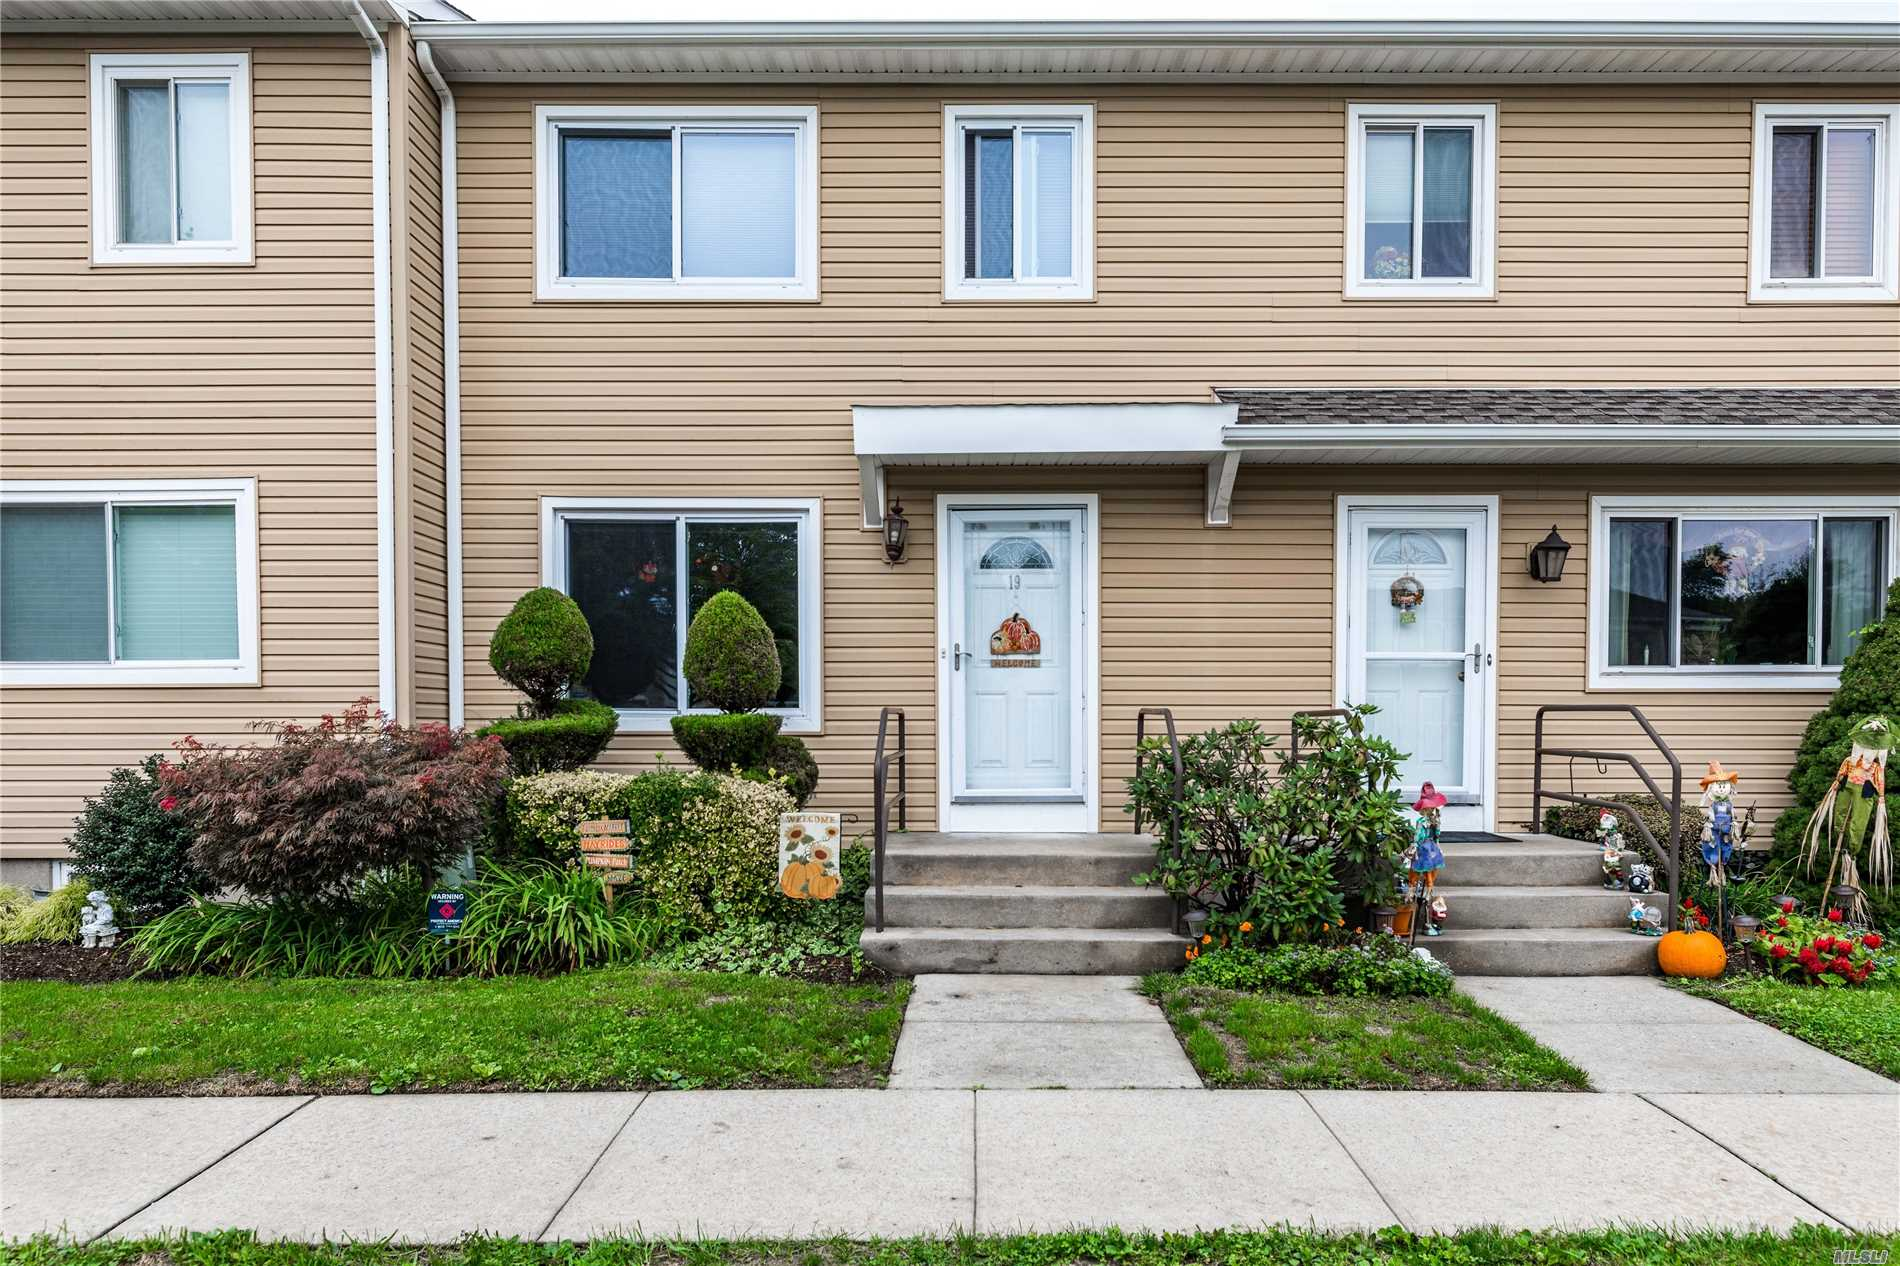 Property for sale at 19 Town House Dr, Massapequa Park,  NY 11762